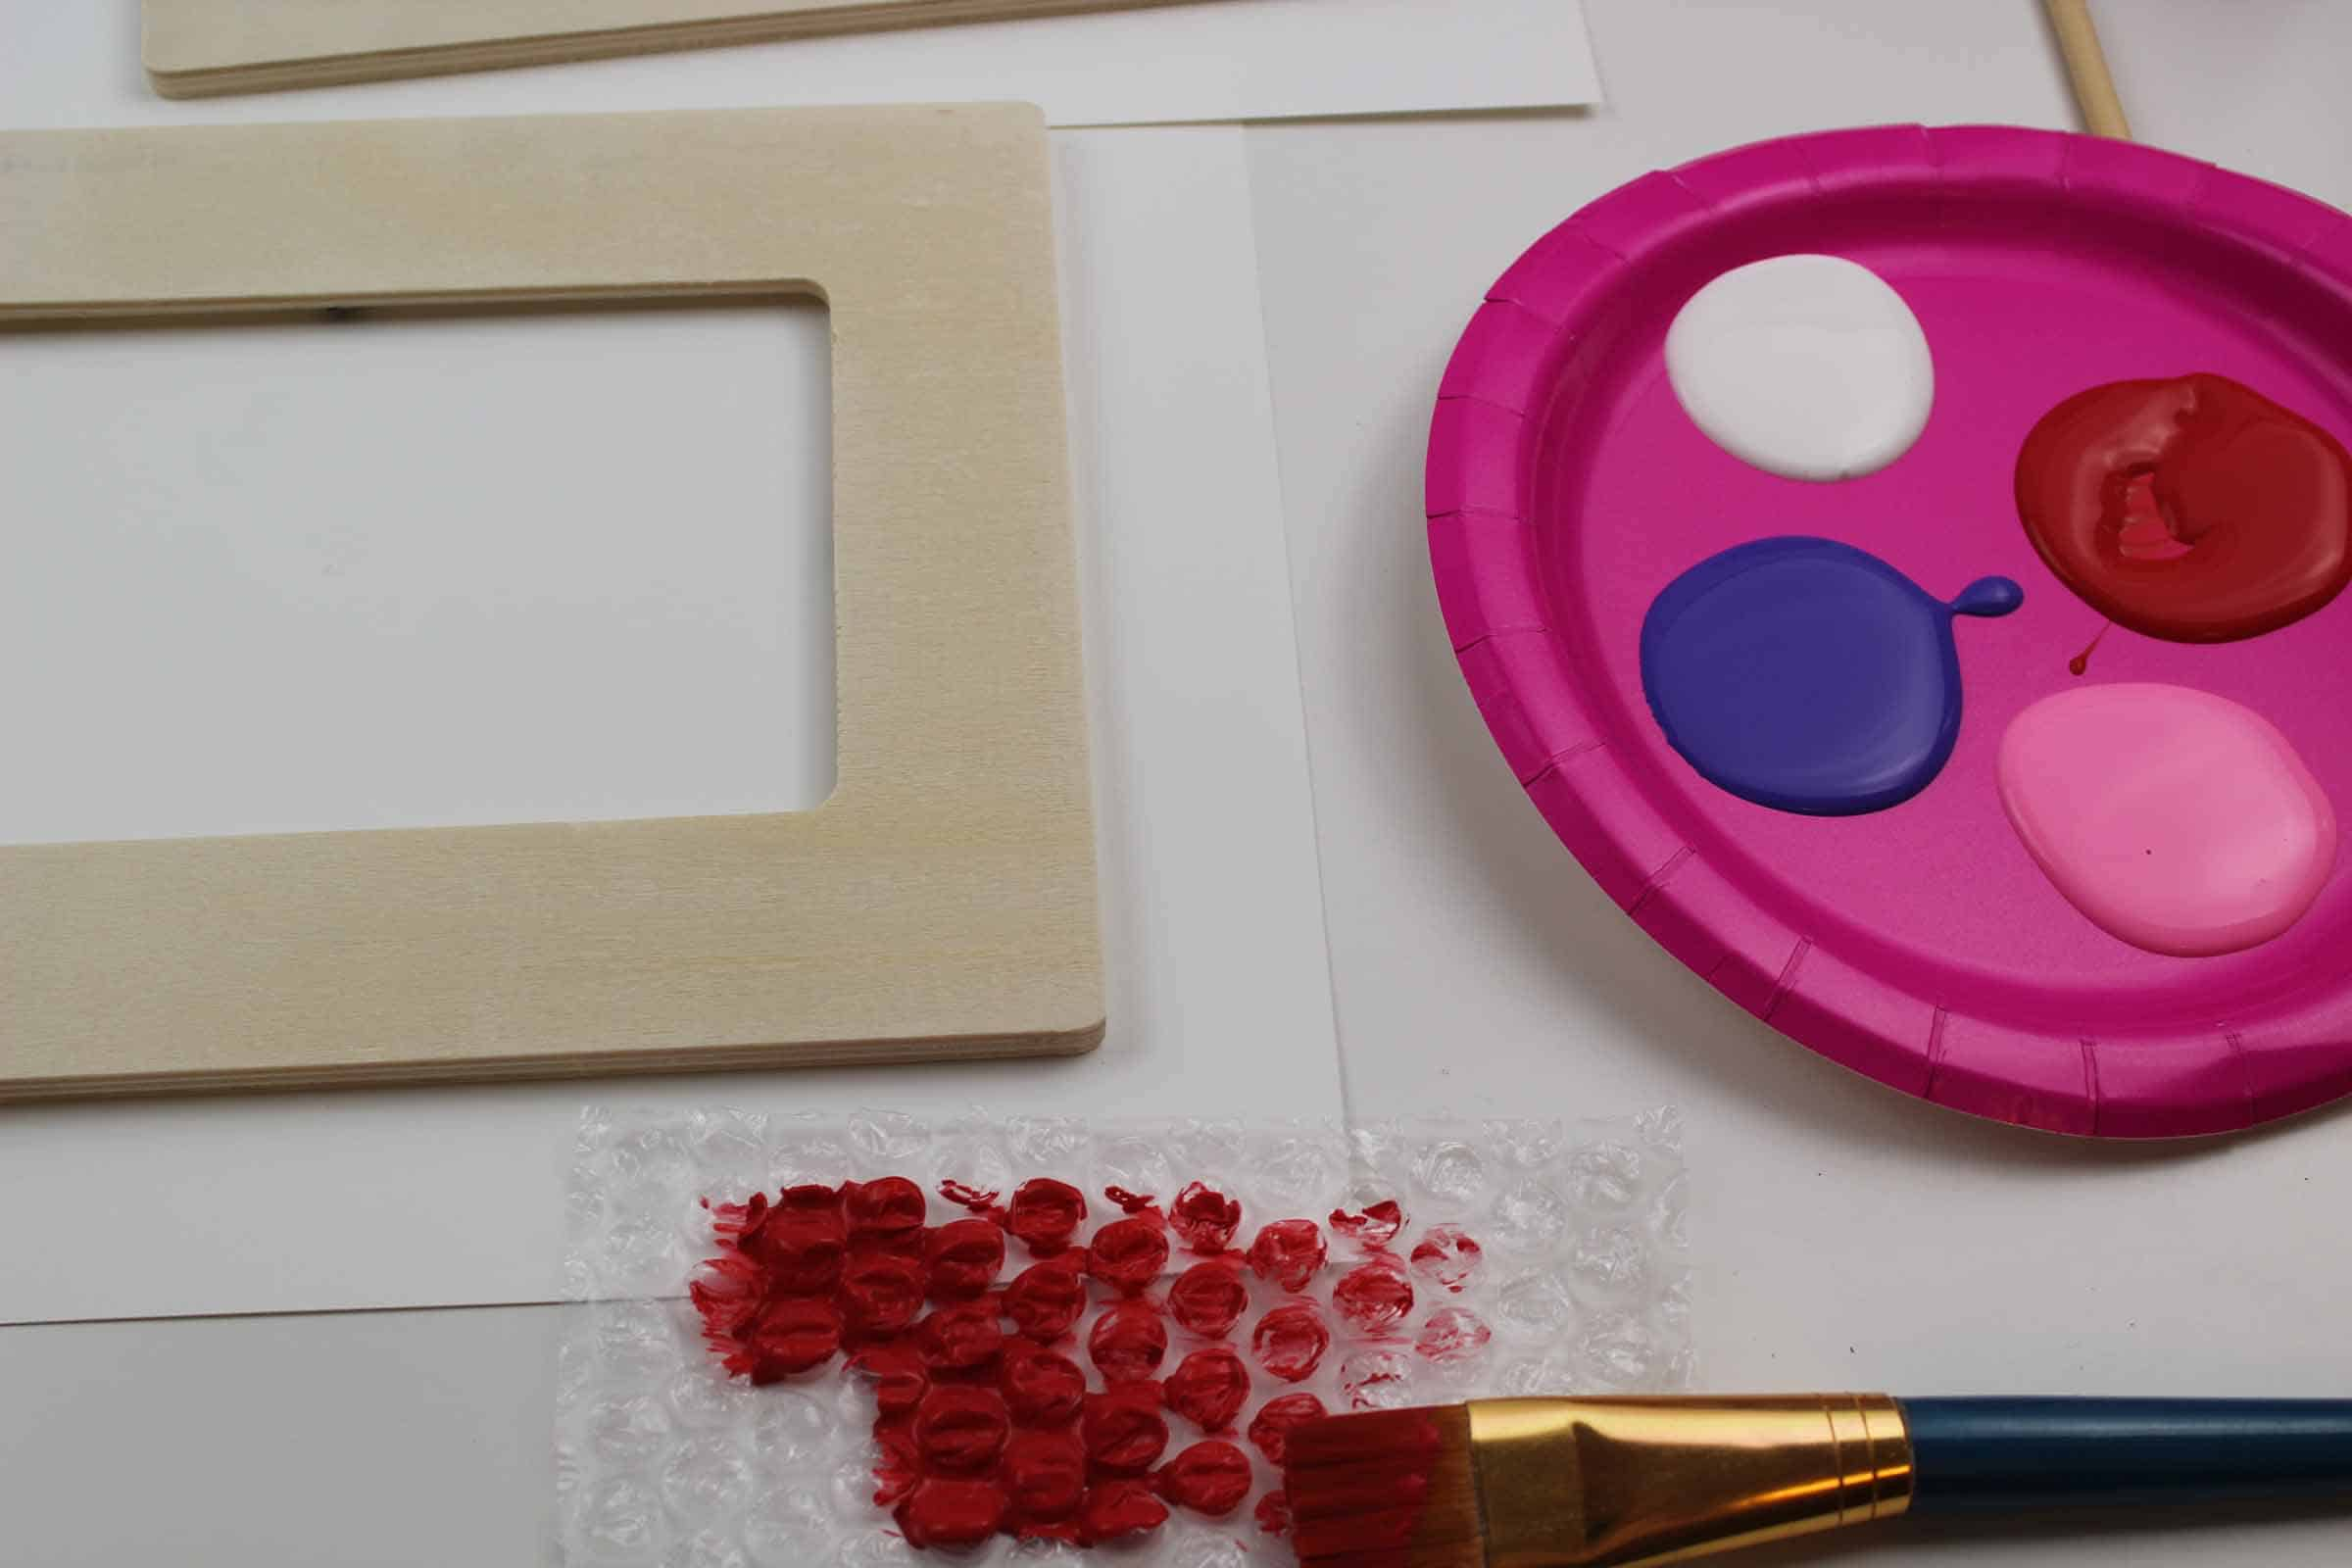 The frame and paint